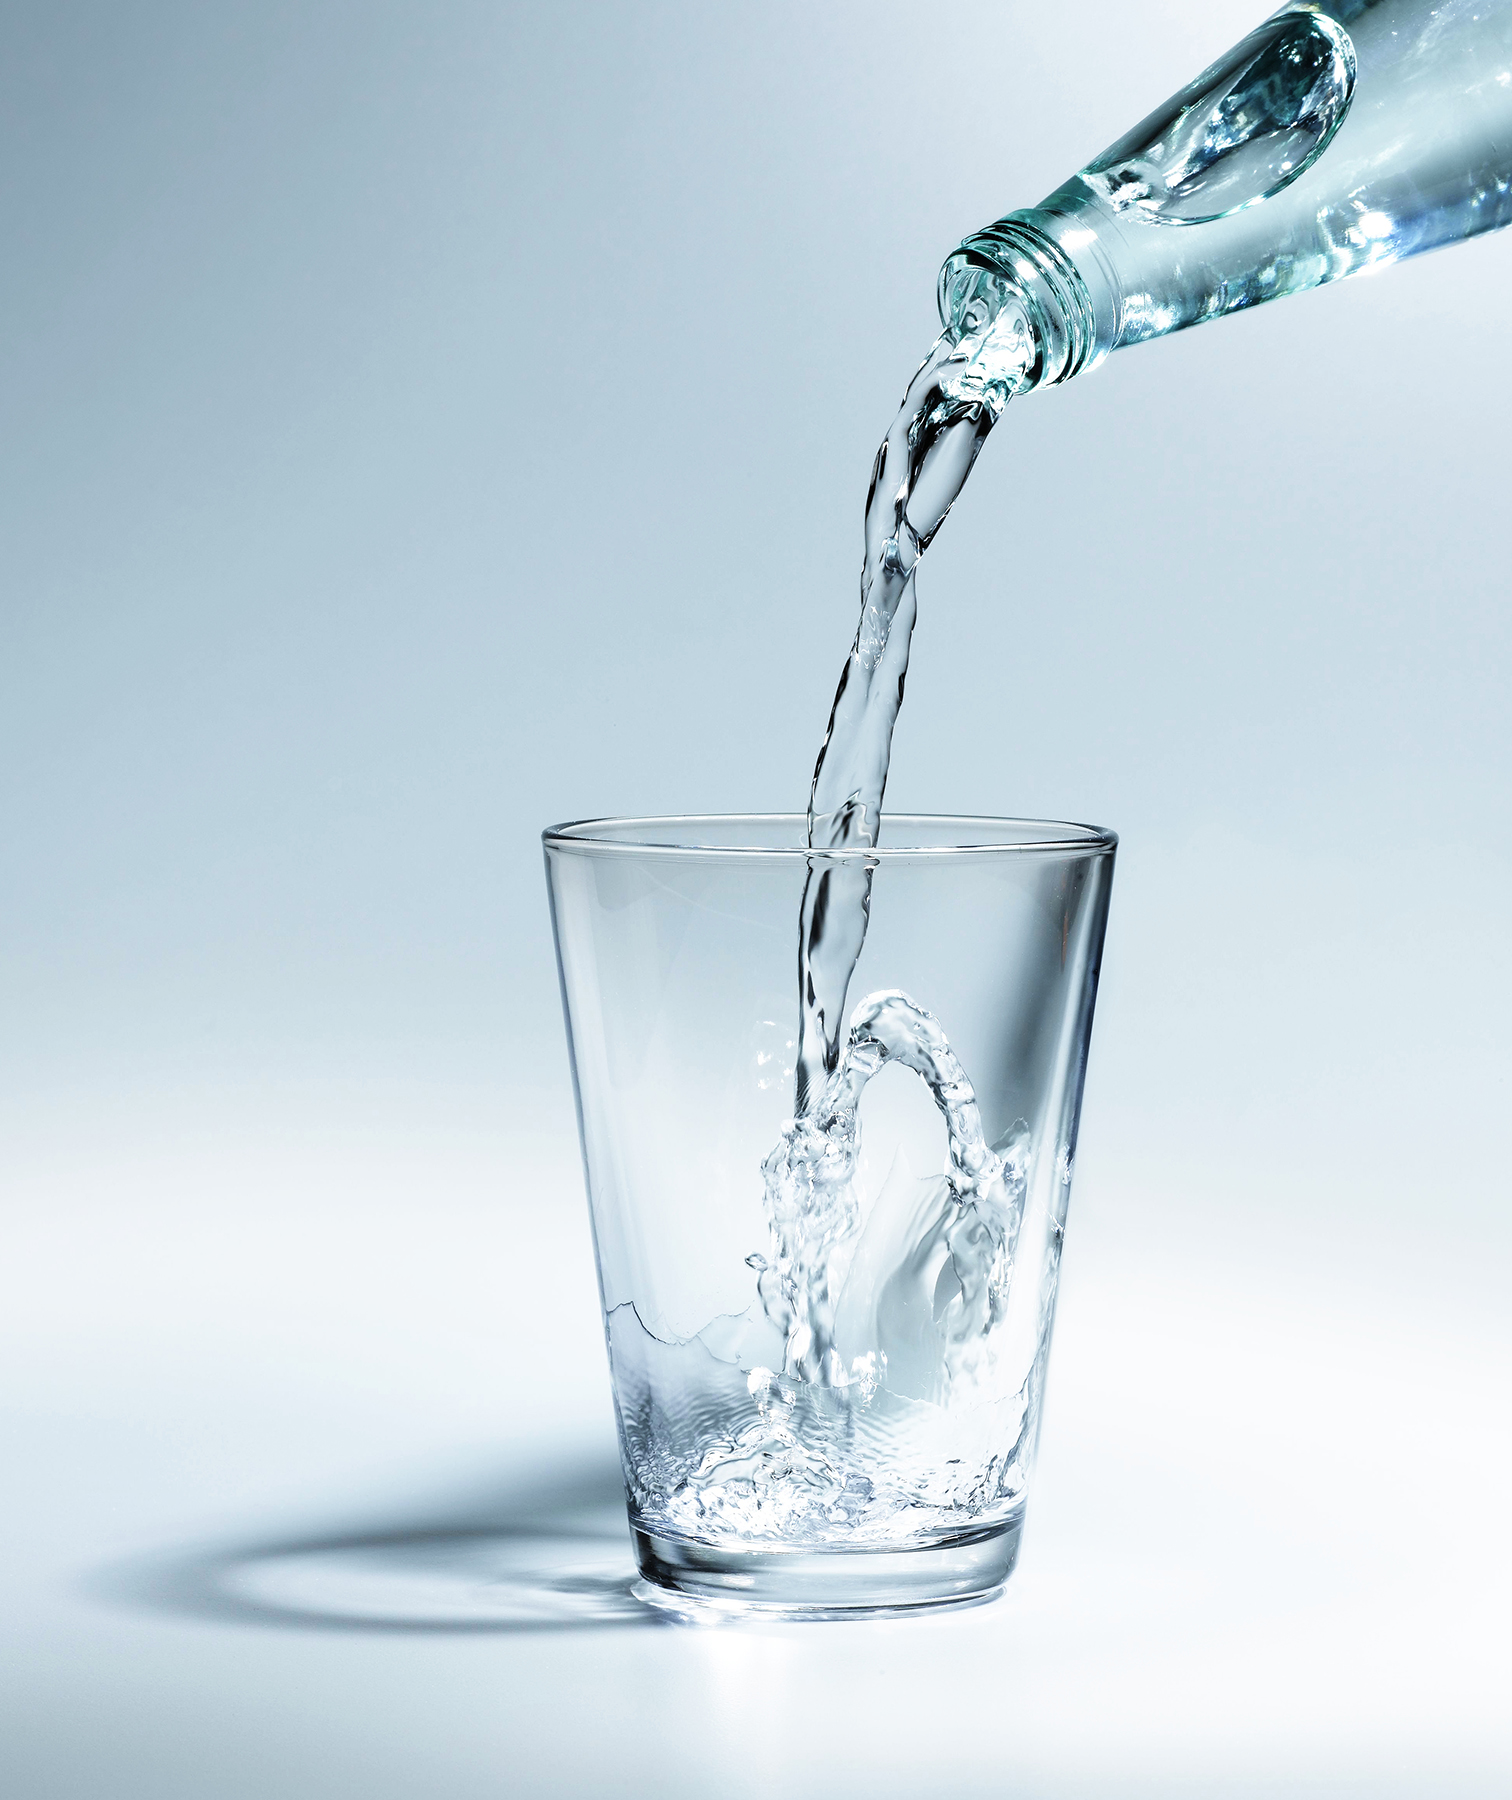 Pouring water out of bottle into glass